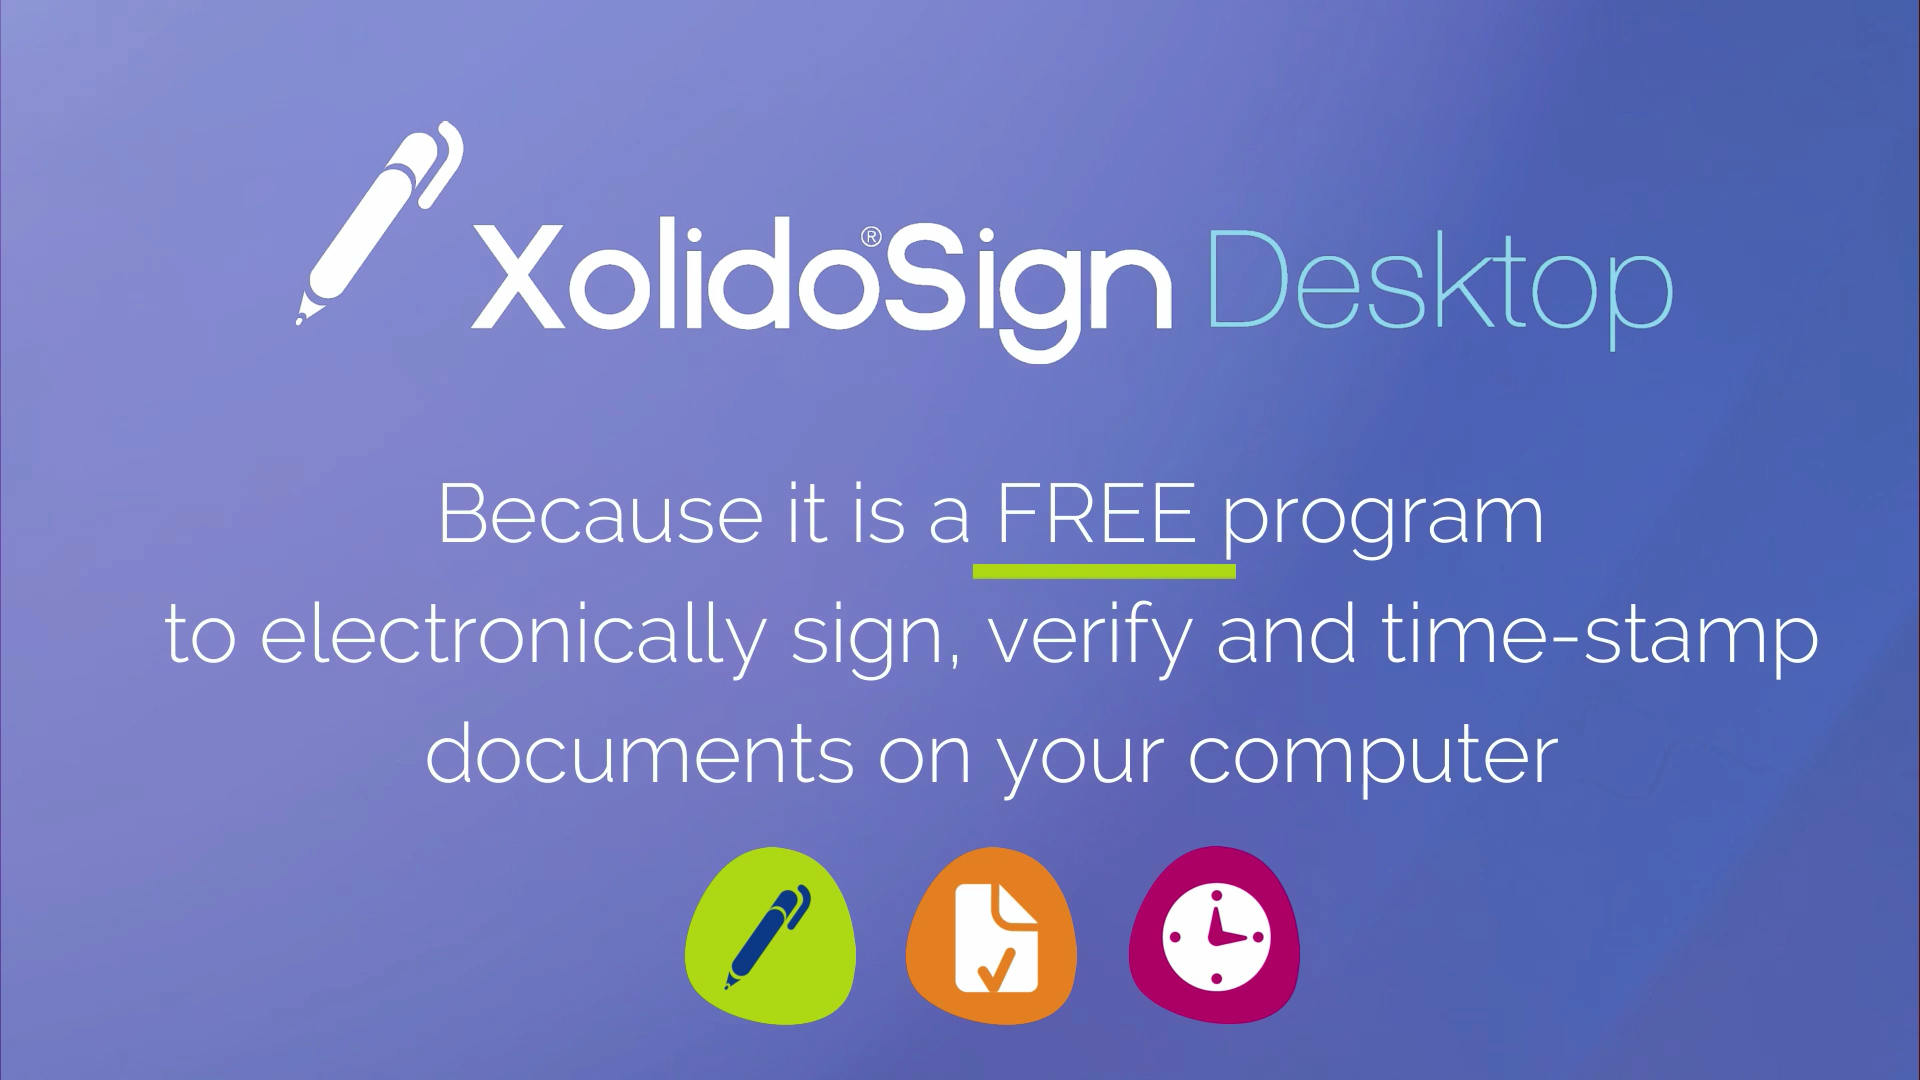 Why use Xolido®Sign Desktop?